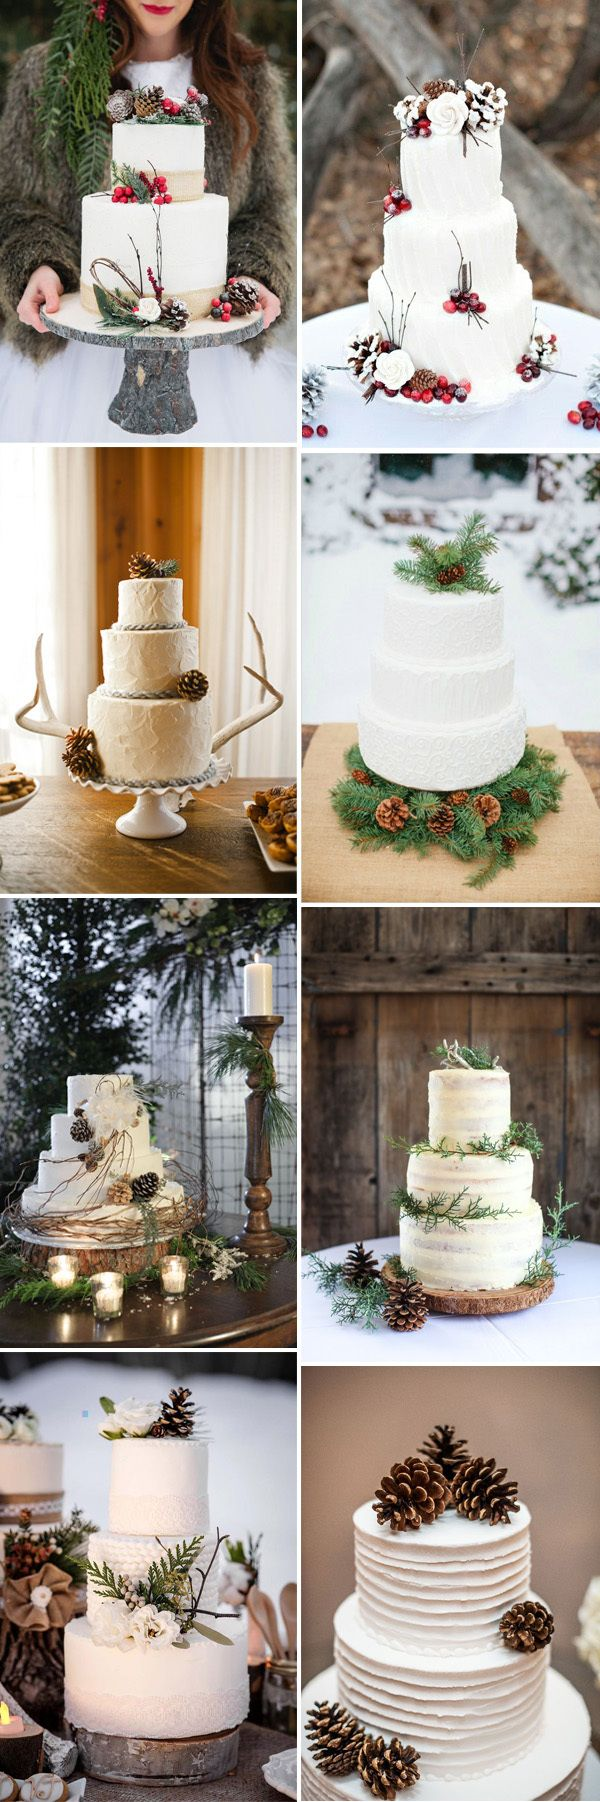 White Winter Wedding Cakes - via EC Invites